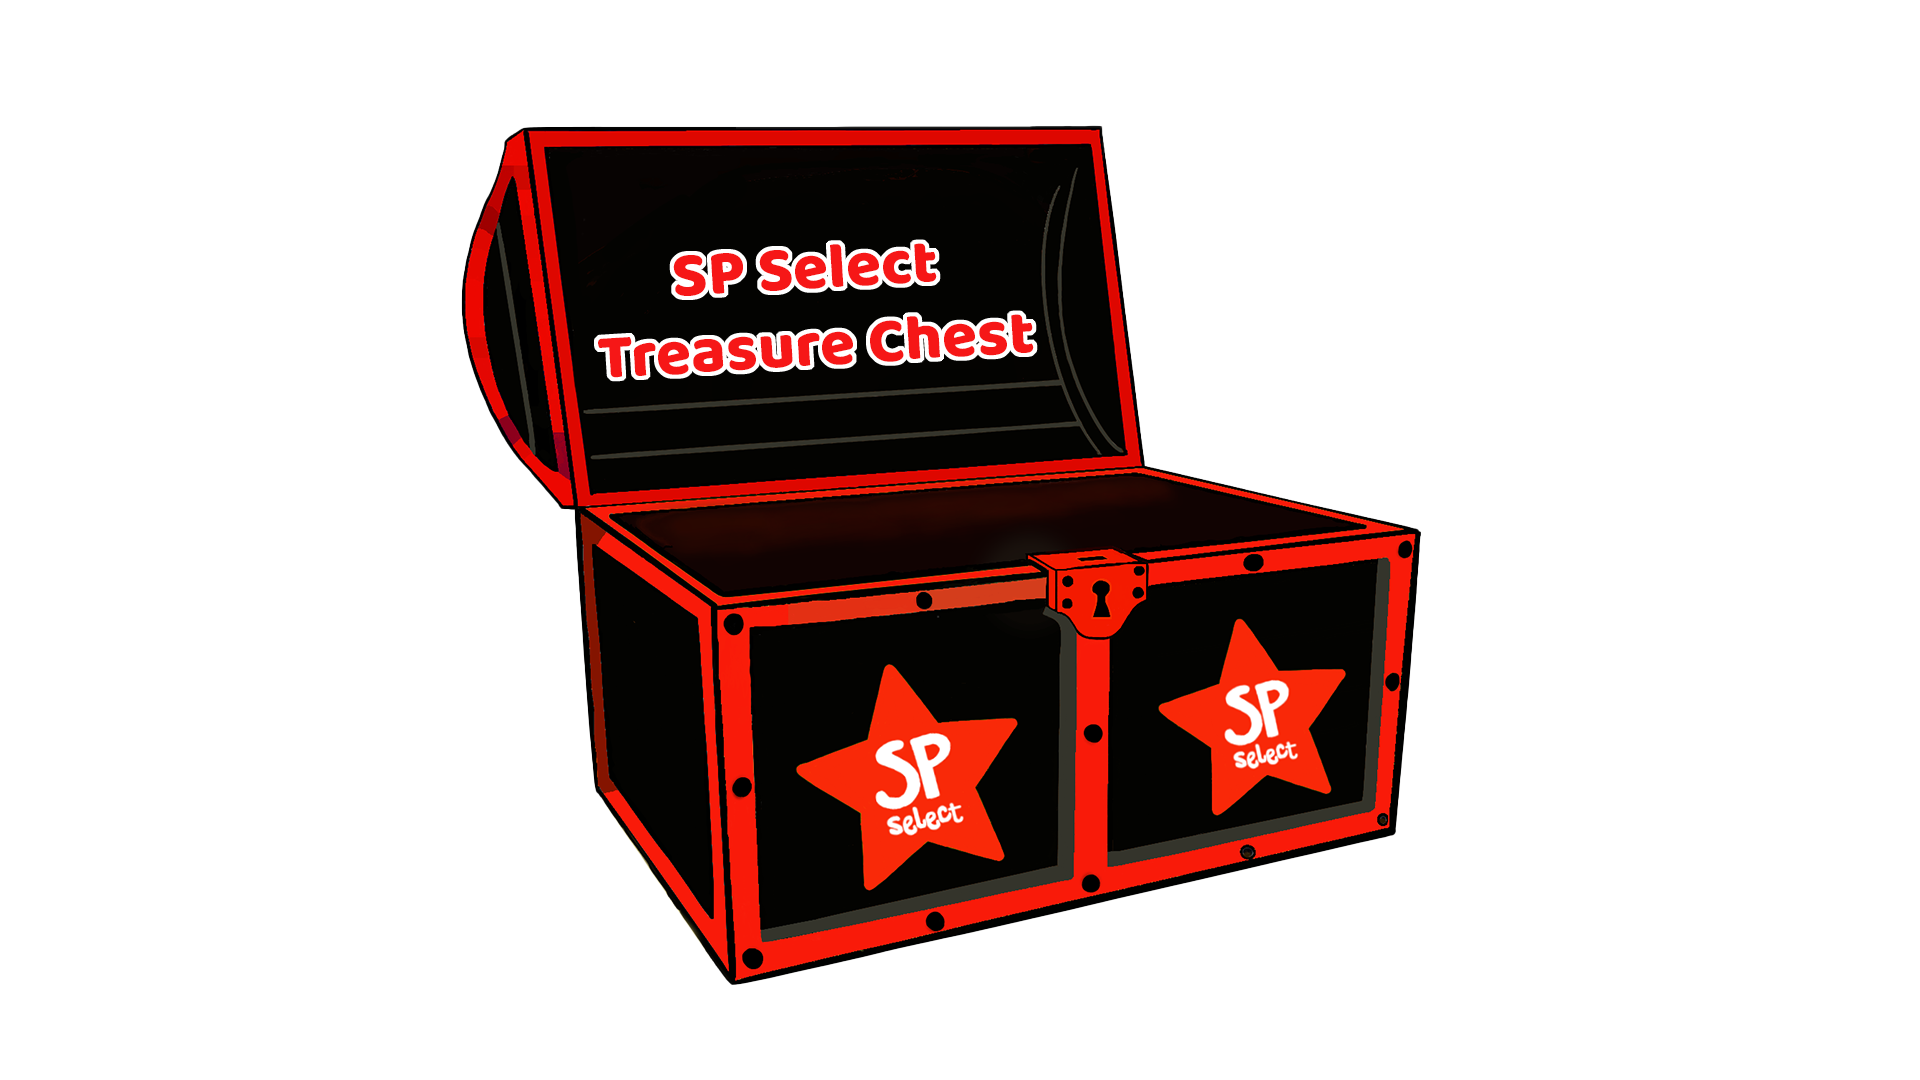 Introducing SP Select Treasure Chest